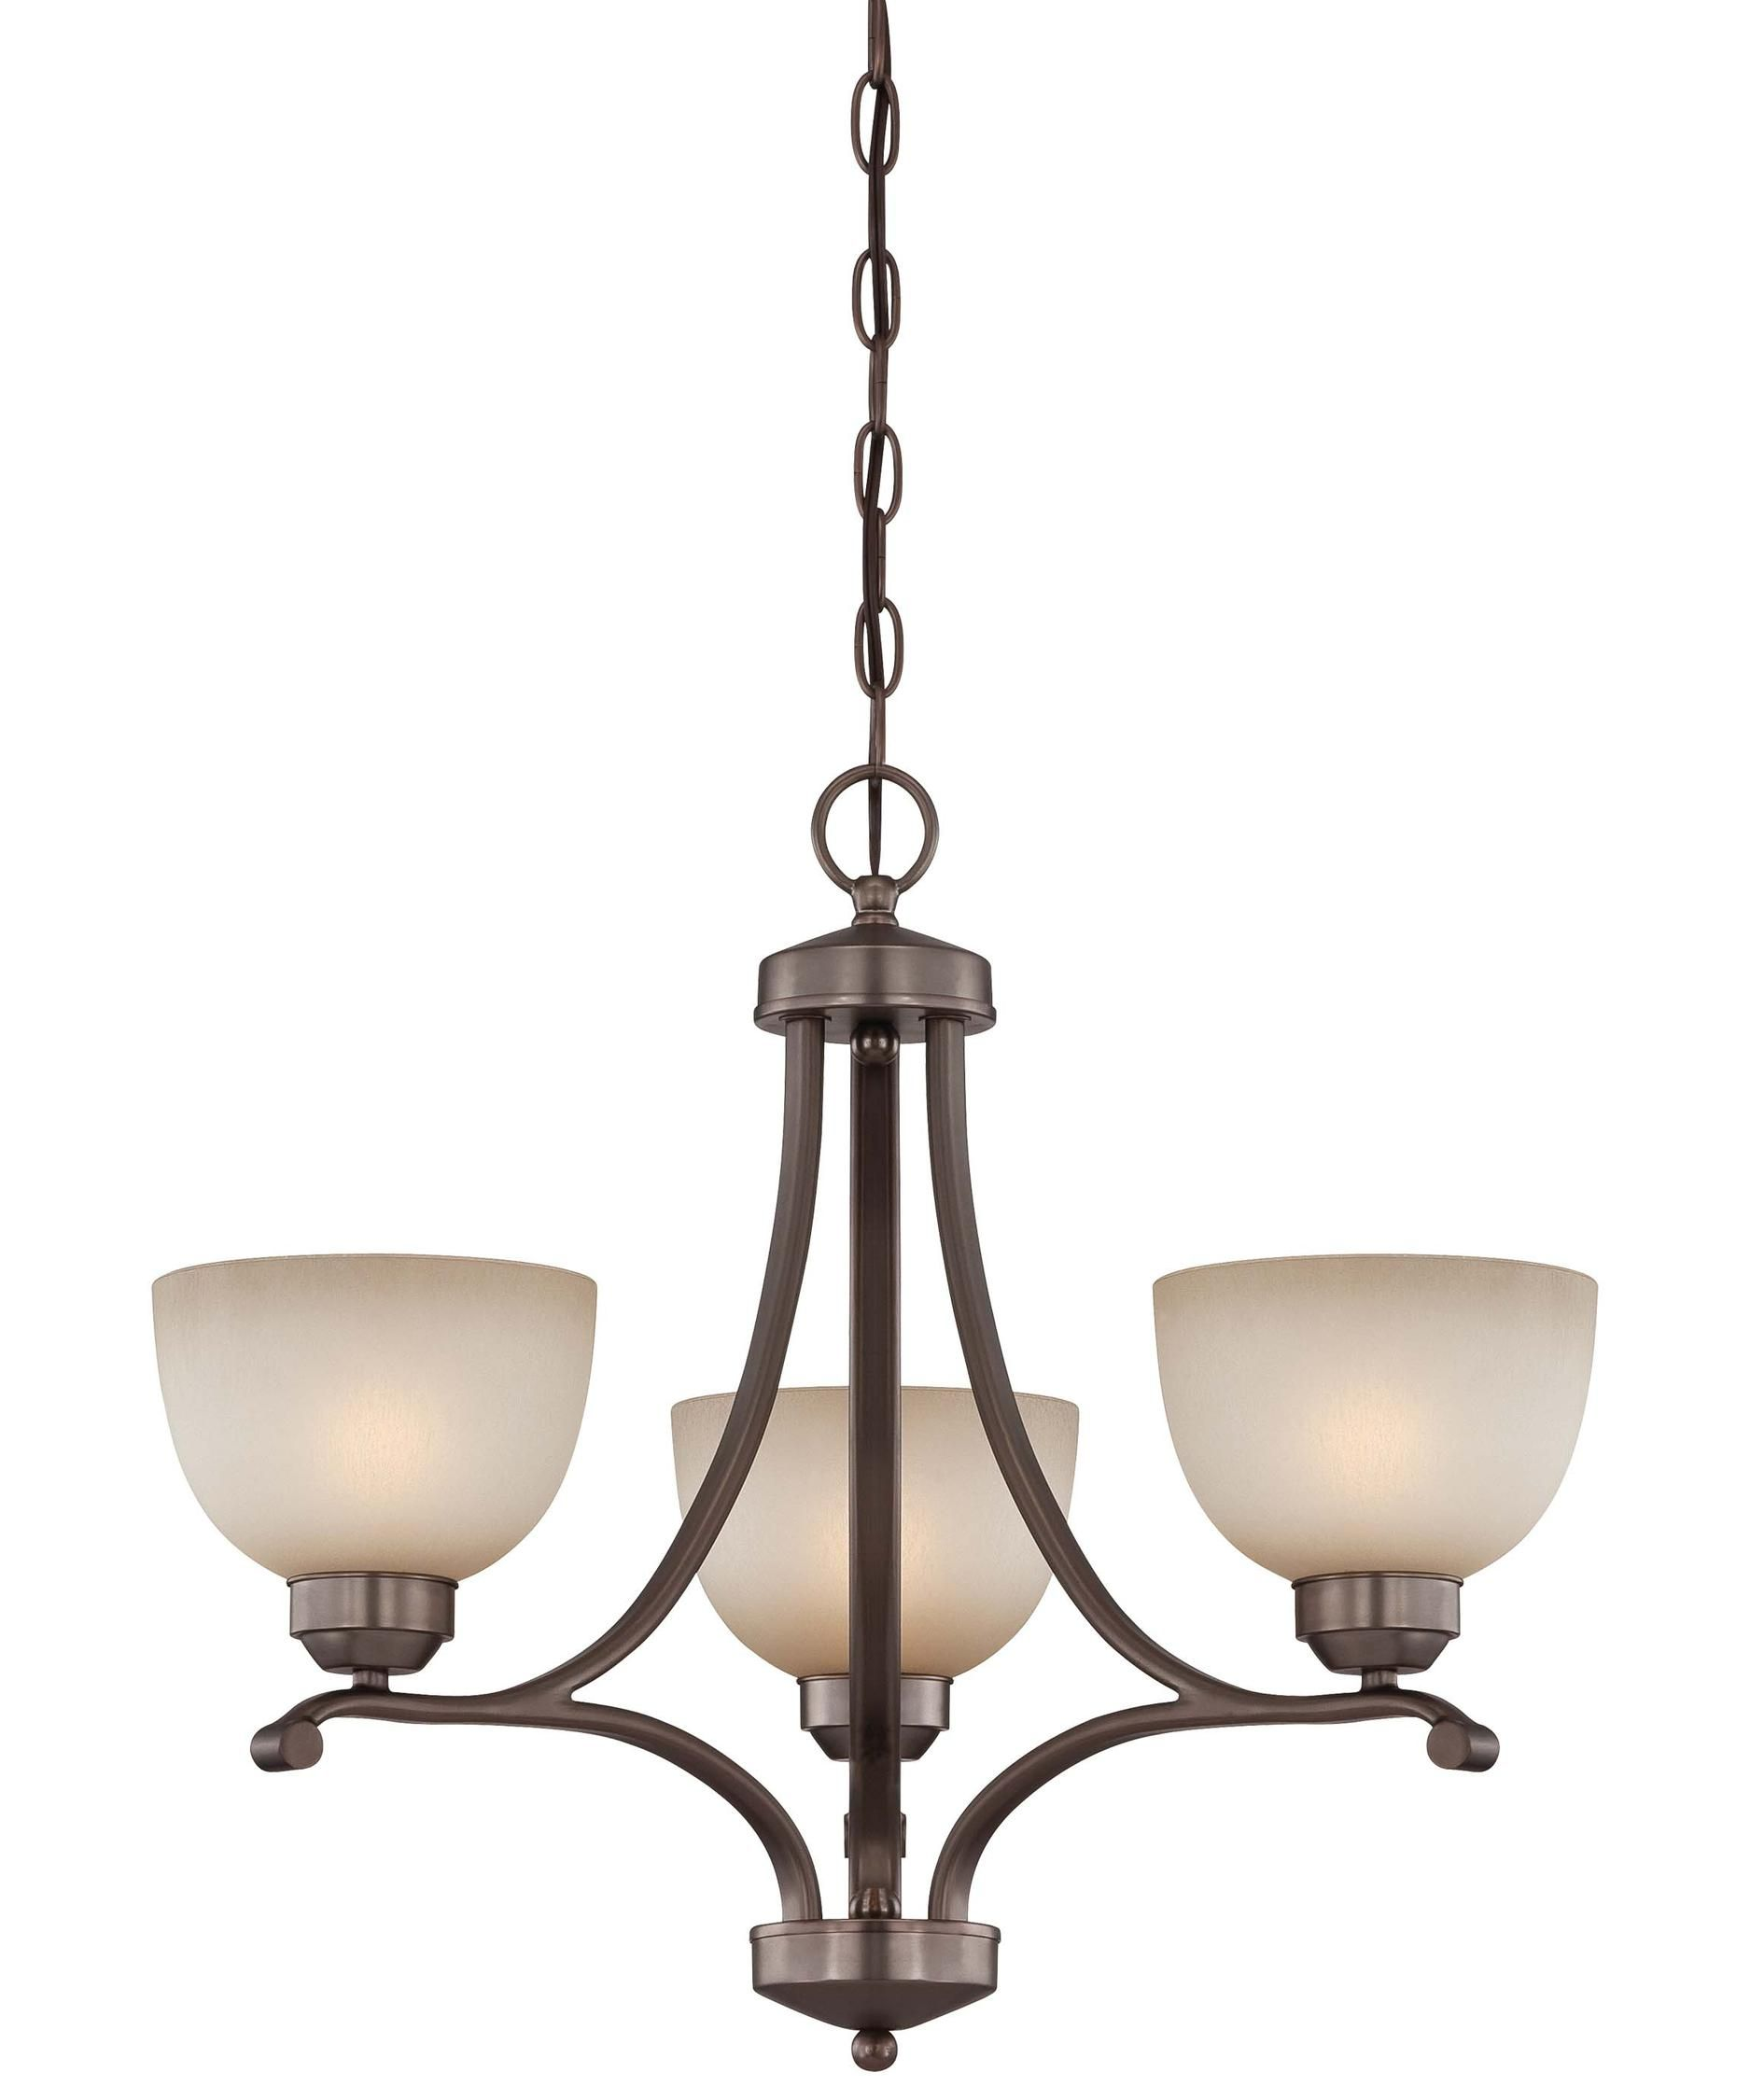 Shown in Bronze finish and Light French Scavo glass